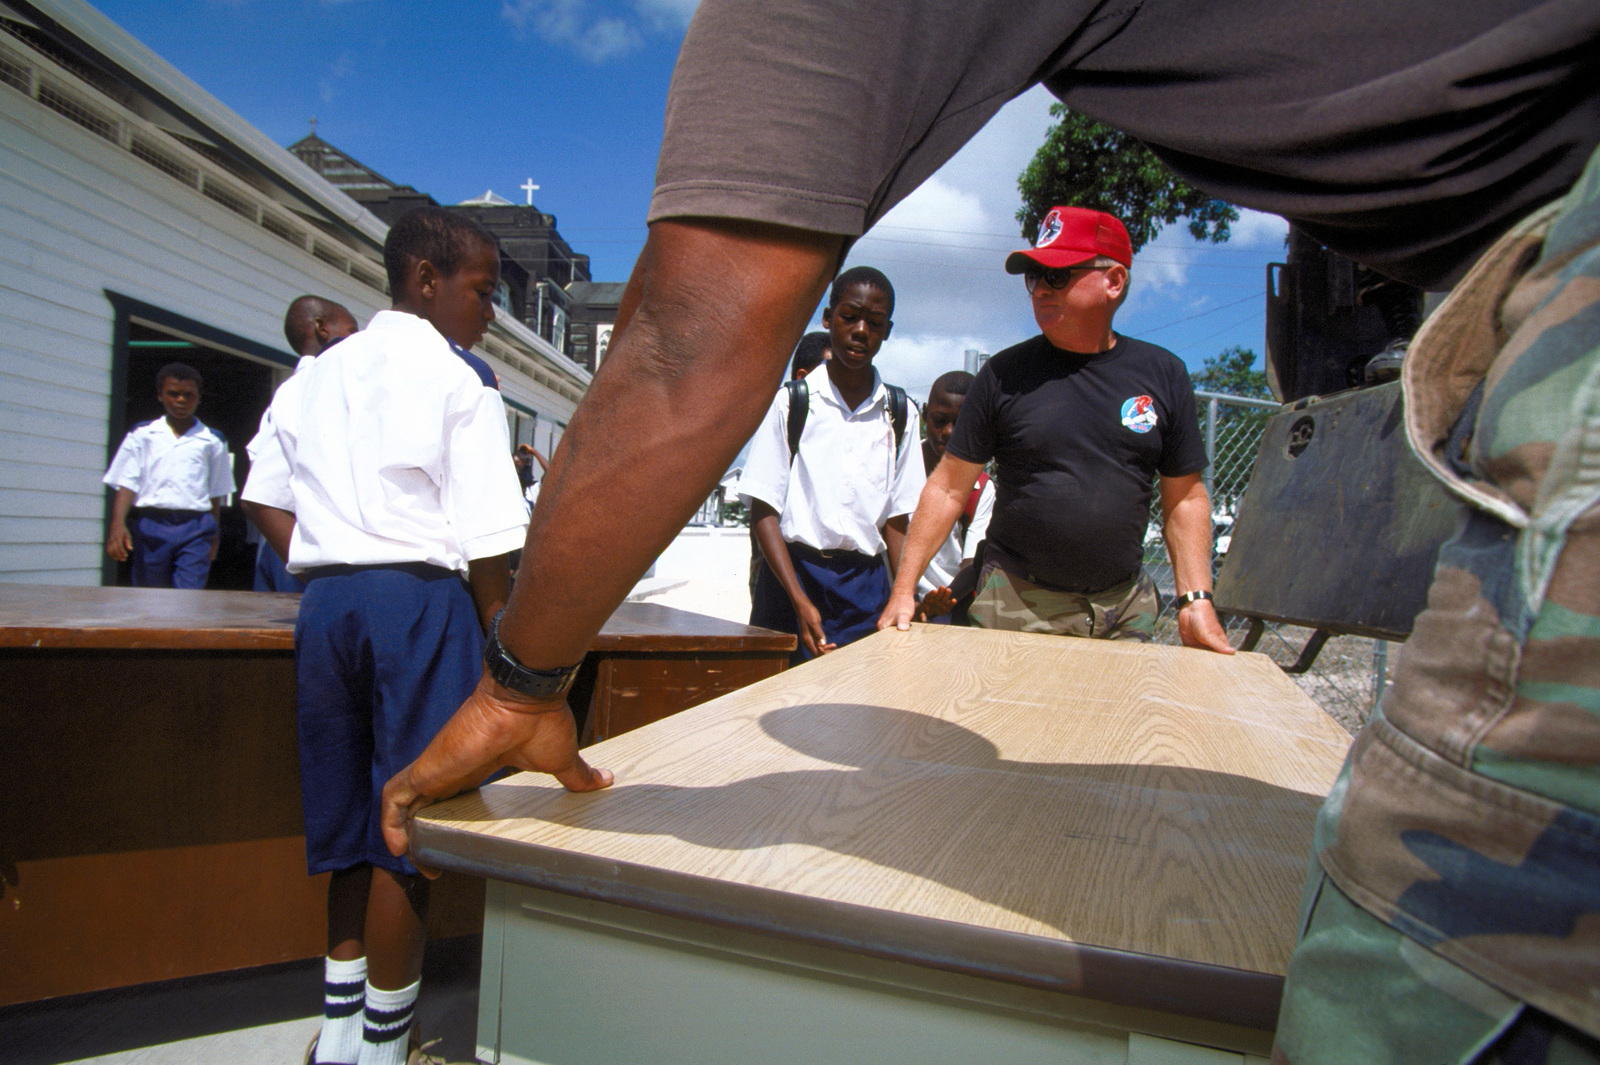 CHIEF MASTER Sergeant Johnson, with the 820th Rapid Engineer Deployment Heavy Operational Repair Squadron Engineer (Red Horse), Nellis Air Force Base, NV helps students carry furniture, donated by Task Force Falcon, into the newly constructed school by the 820th and other the participants of New Horizon '97, first combined humanitarian and civic assistance exercise conducted between the United States and Guyana. Military personnel from the Air Force, Air Force Reserve & National Guard, Army, Army National Guard and Marine Corps participated in the exercise which included engineering and medical readiness training